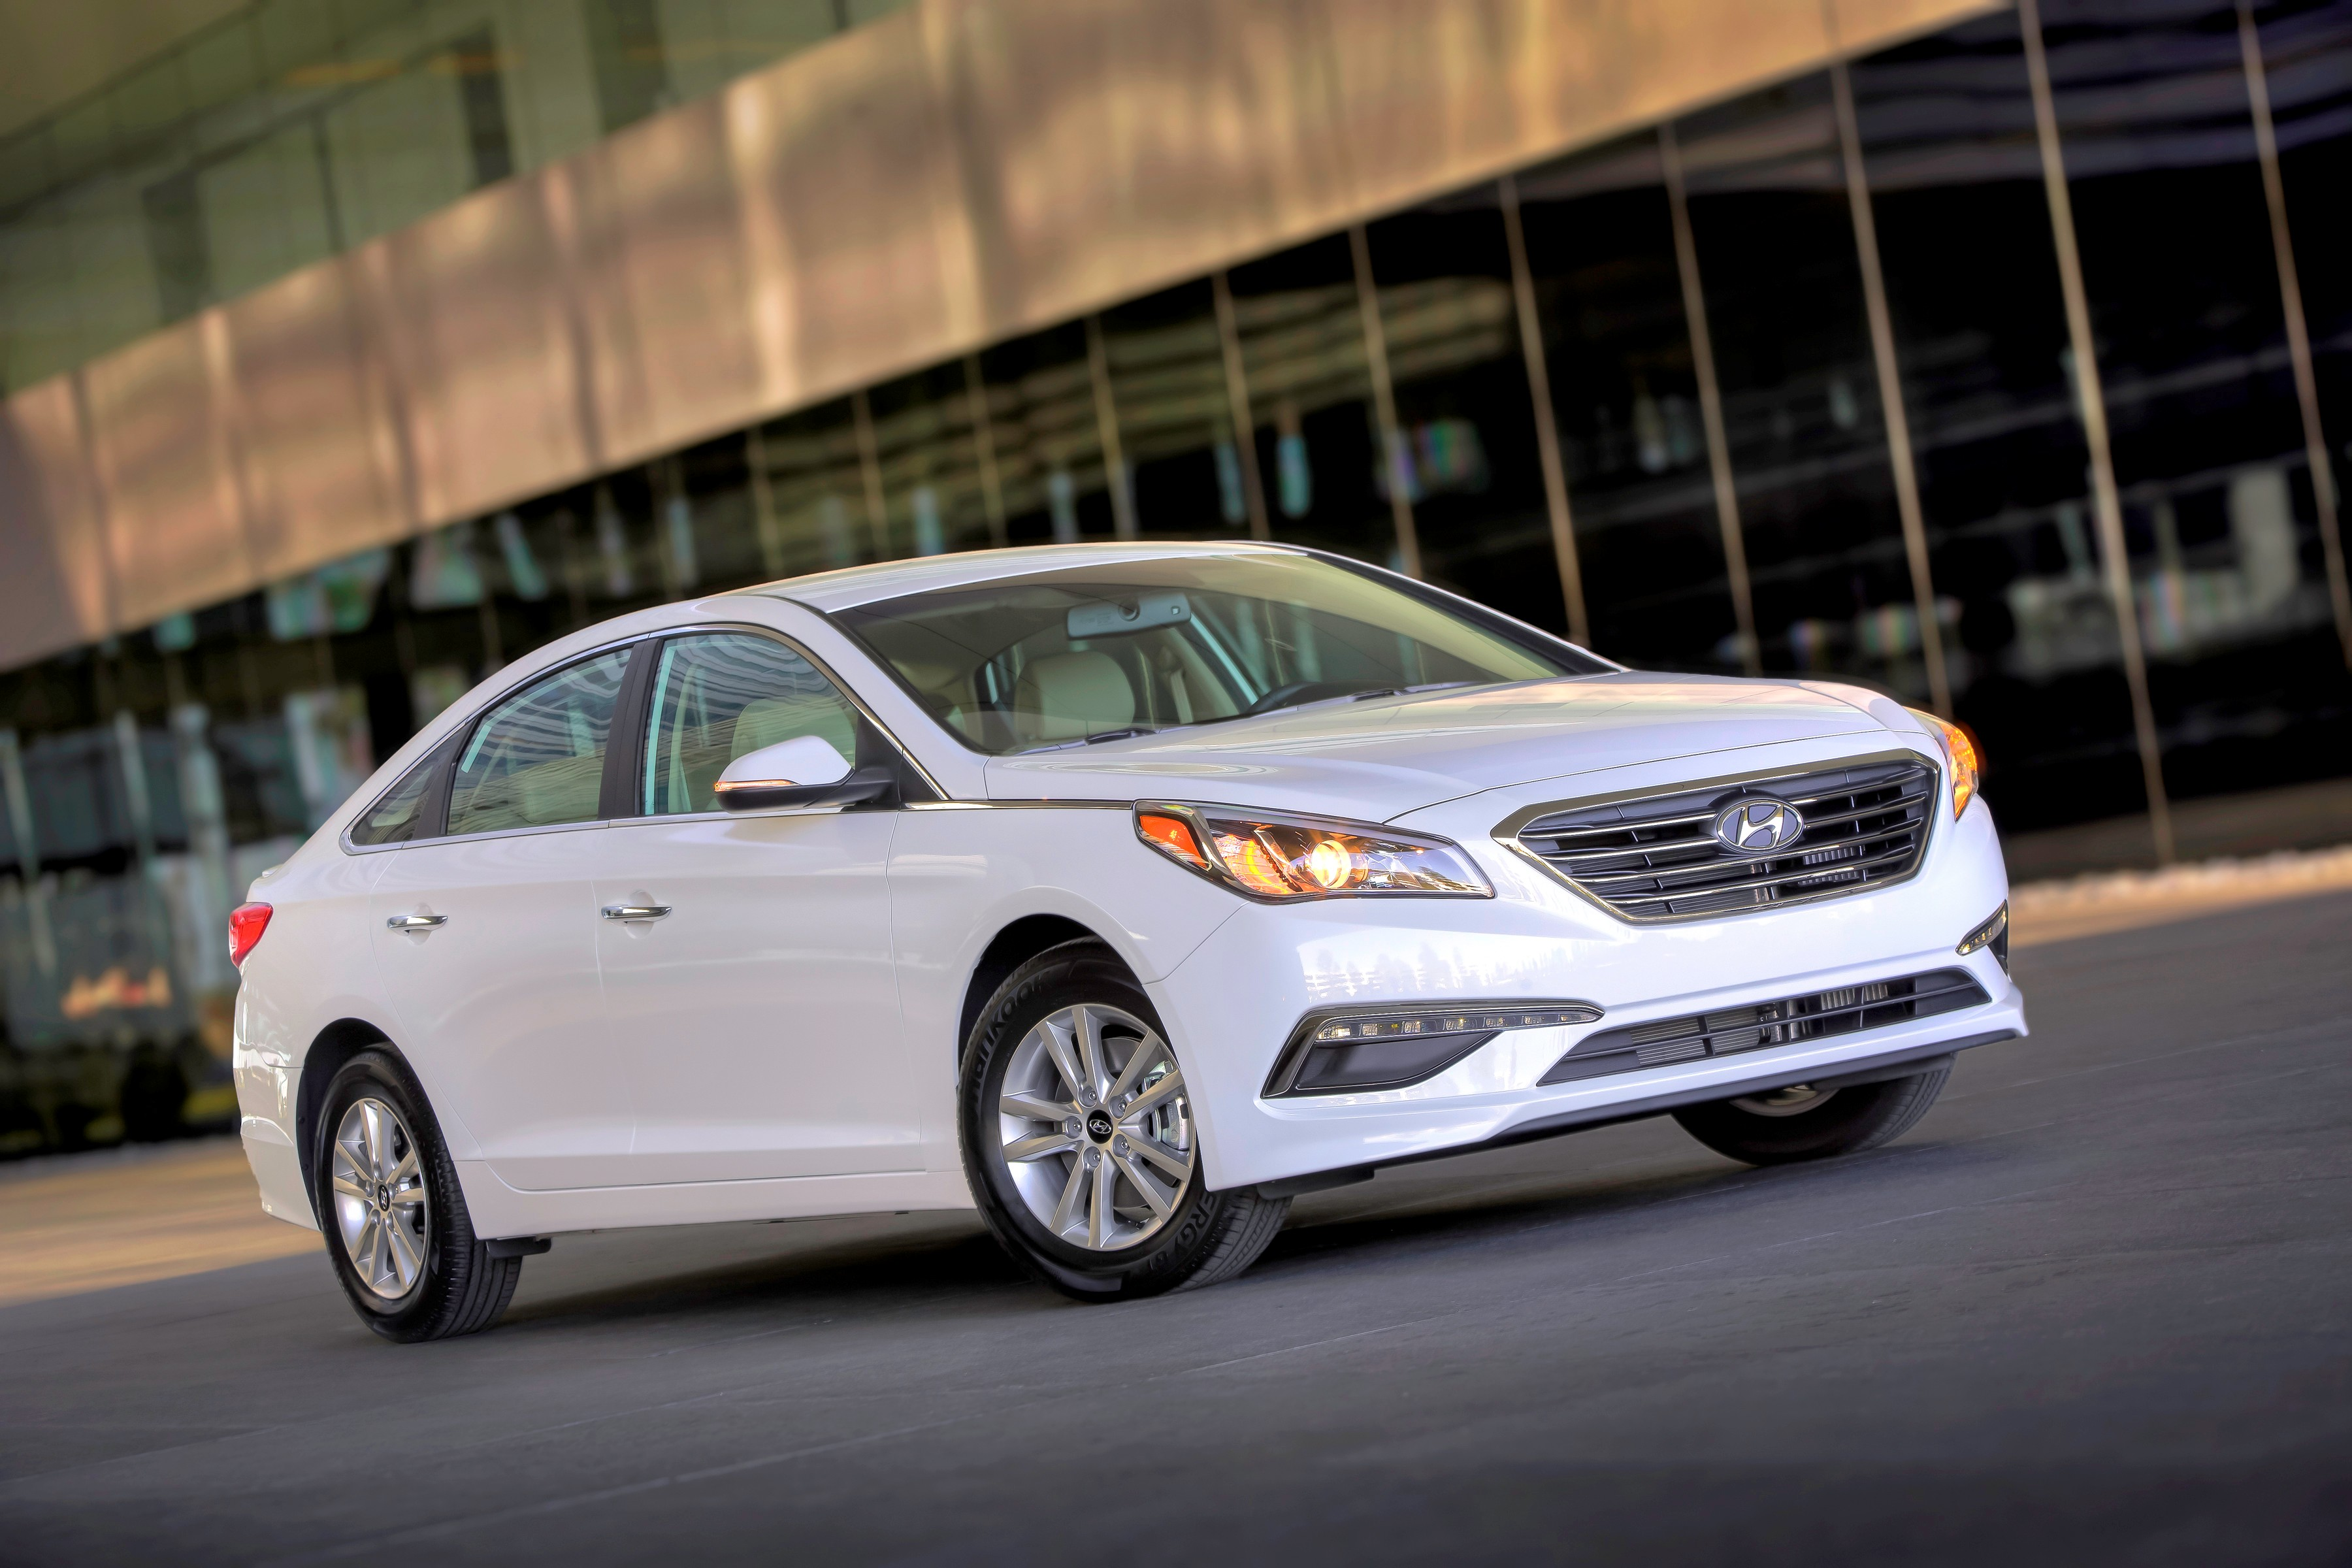 Hyundai Sonata Hybrid Carries Over Eco Gets 32 Mpg But Where S That Plug In